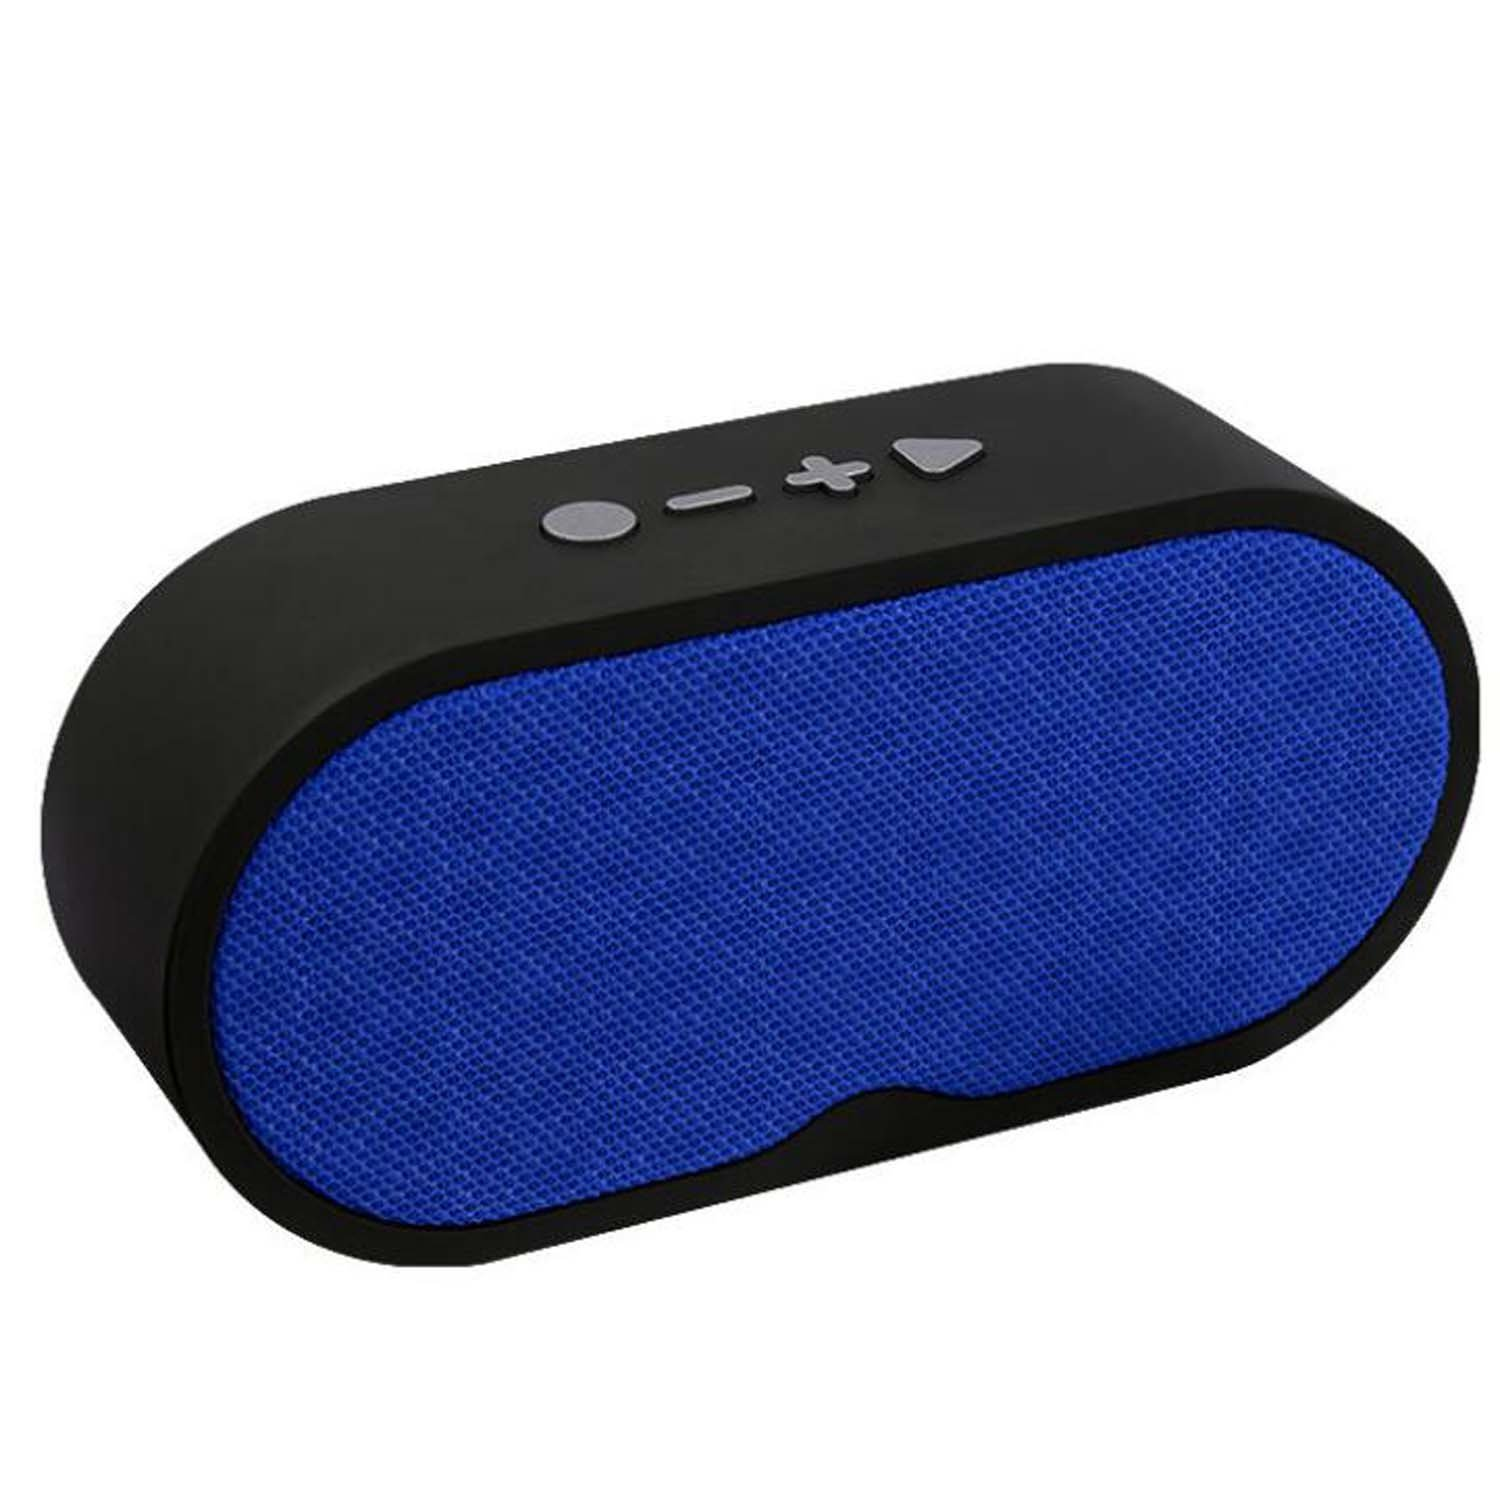 Hzhy Handsfree Bluetooth Speaker Wireless Card Radio Subwoofer Bluetooth Audio Gift (Blue, Black, Red) (Color : Blue)